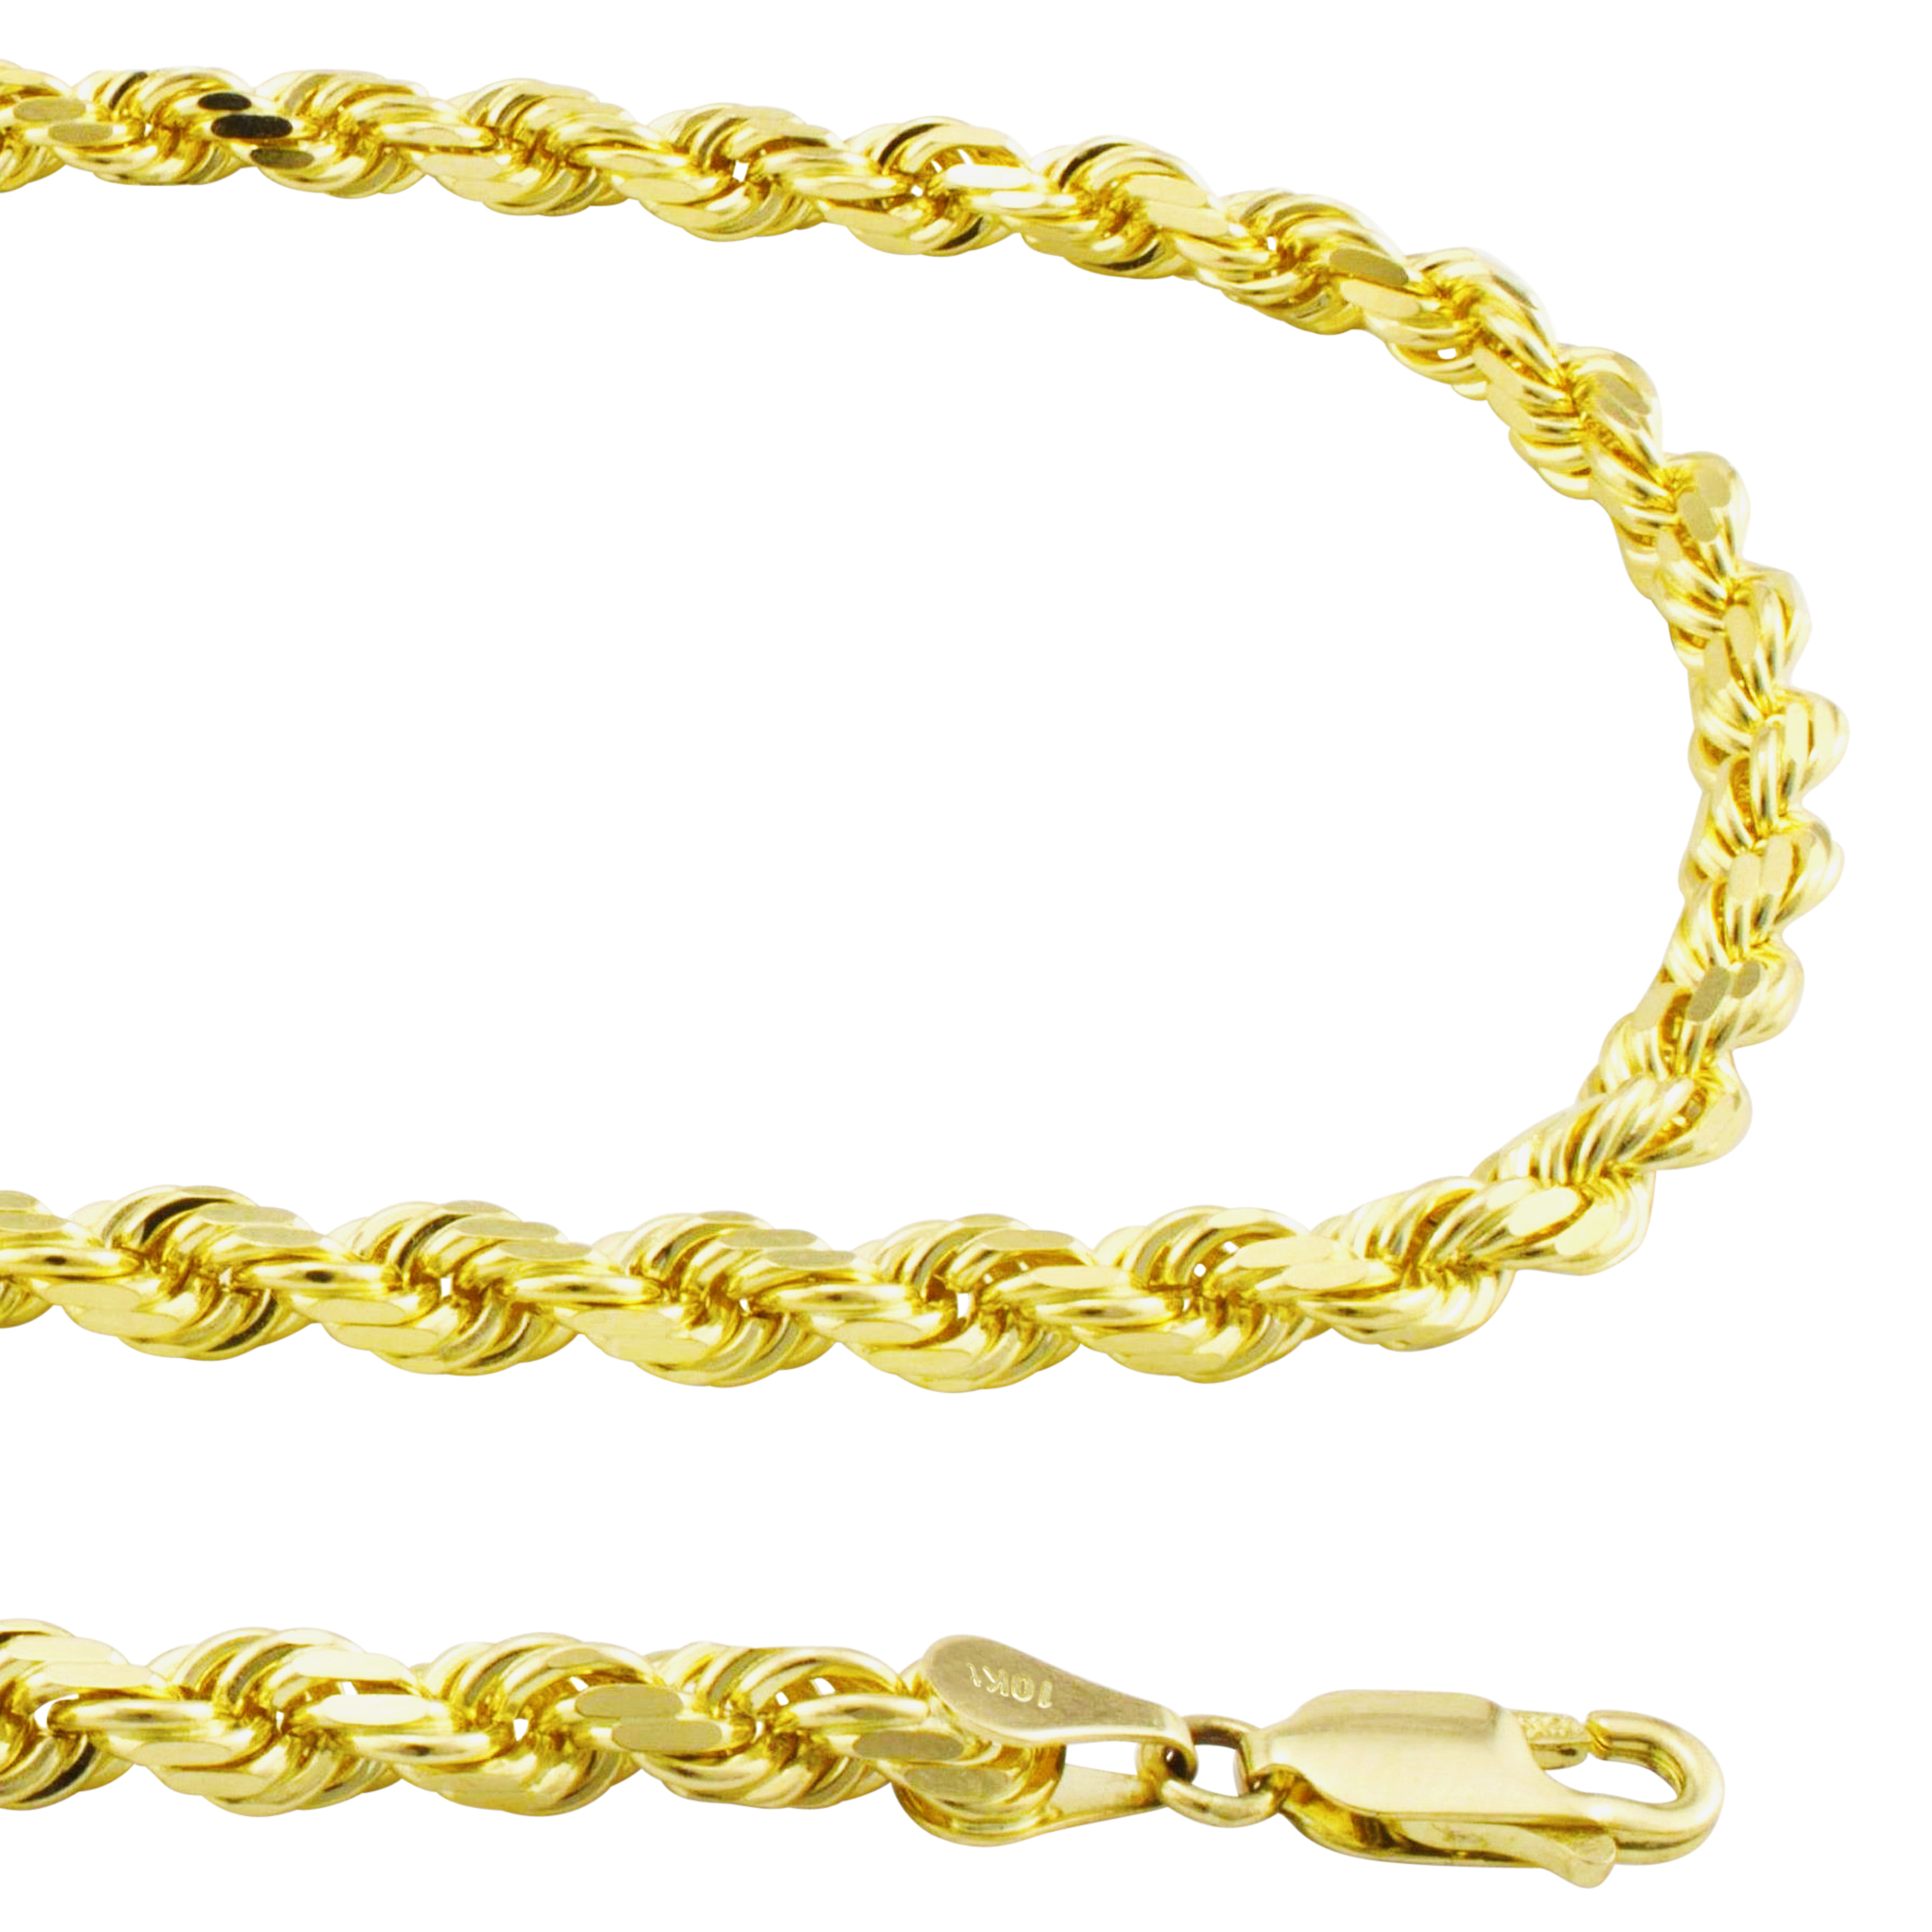 10K-Real-Yellow-Gold-Mens-Wide-5mm-Diamond-Cut-Rope-Chain-Bracelet-8-034-8-5-034-9-034 thumbnail 22